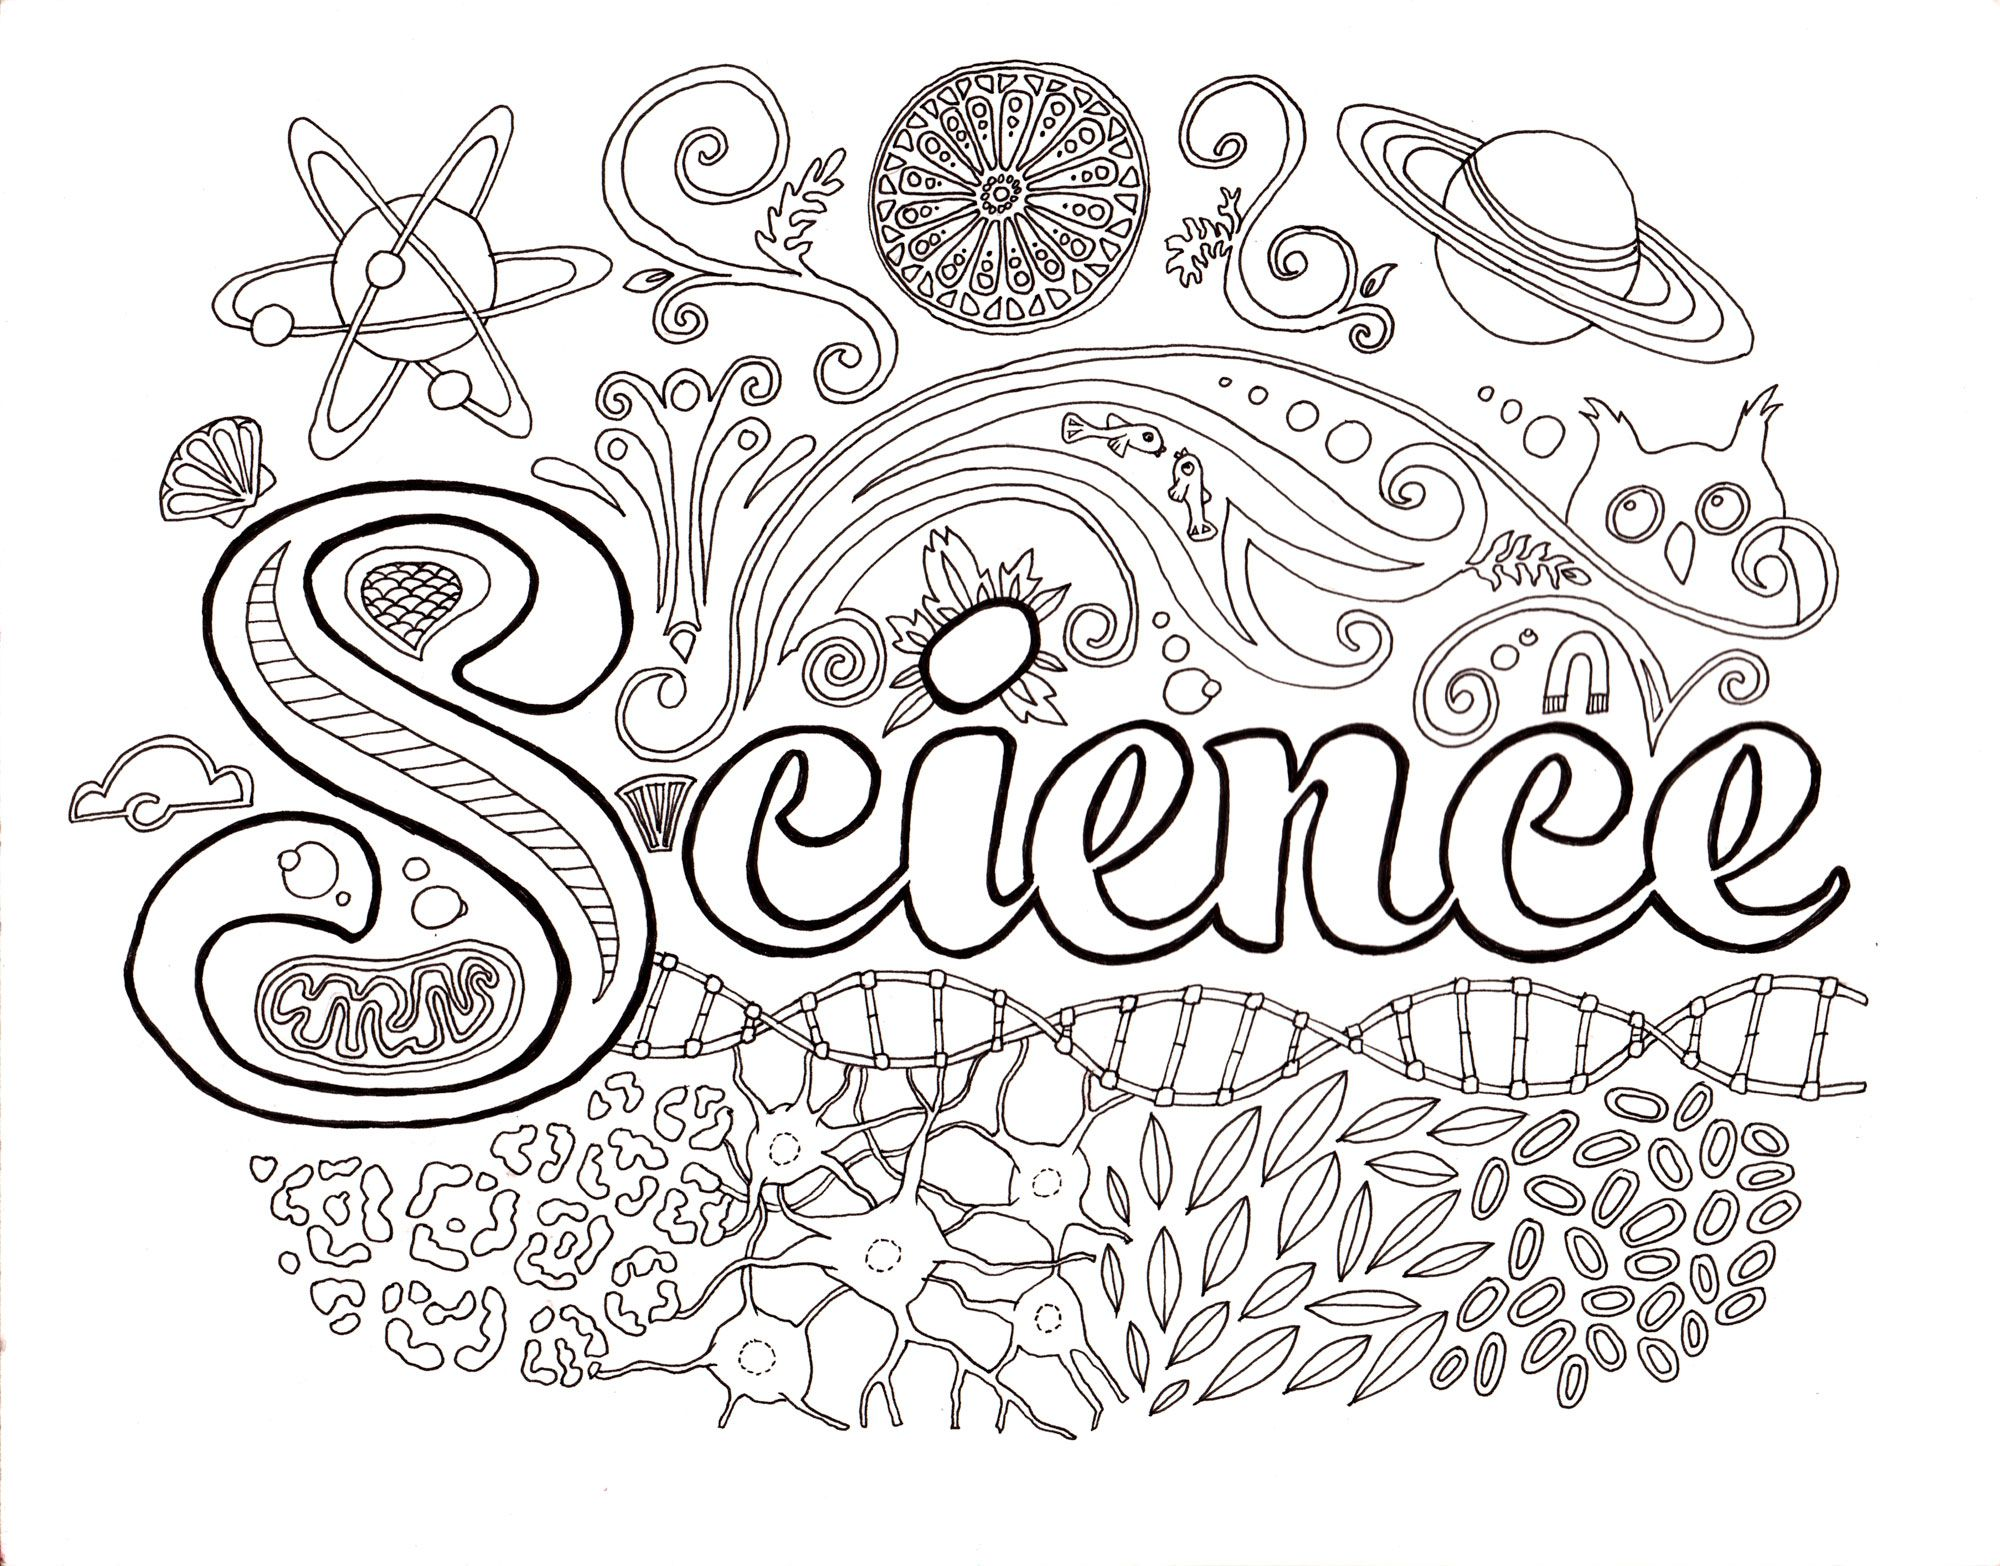 science themed coloring pages - science lab coloring pages coloring home